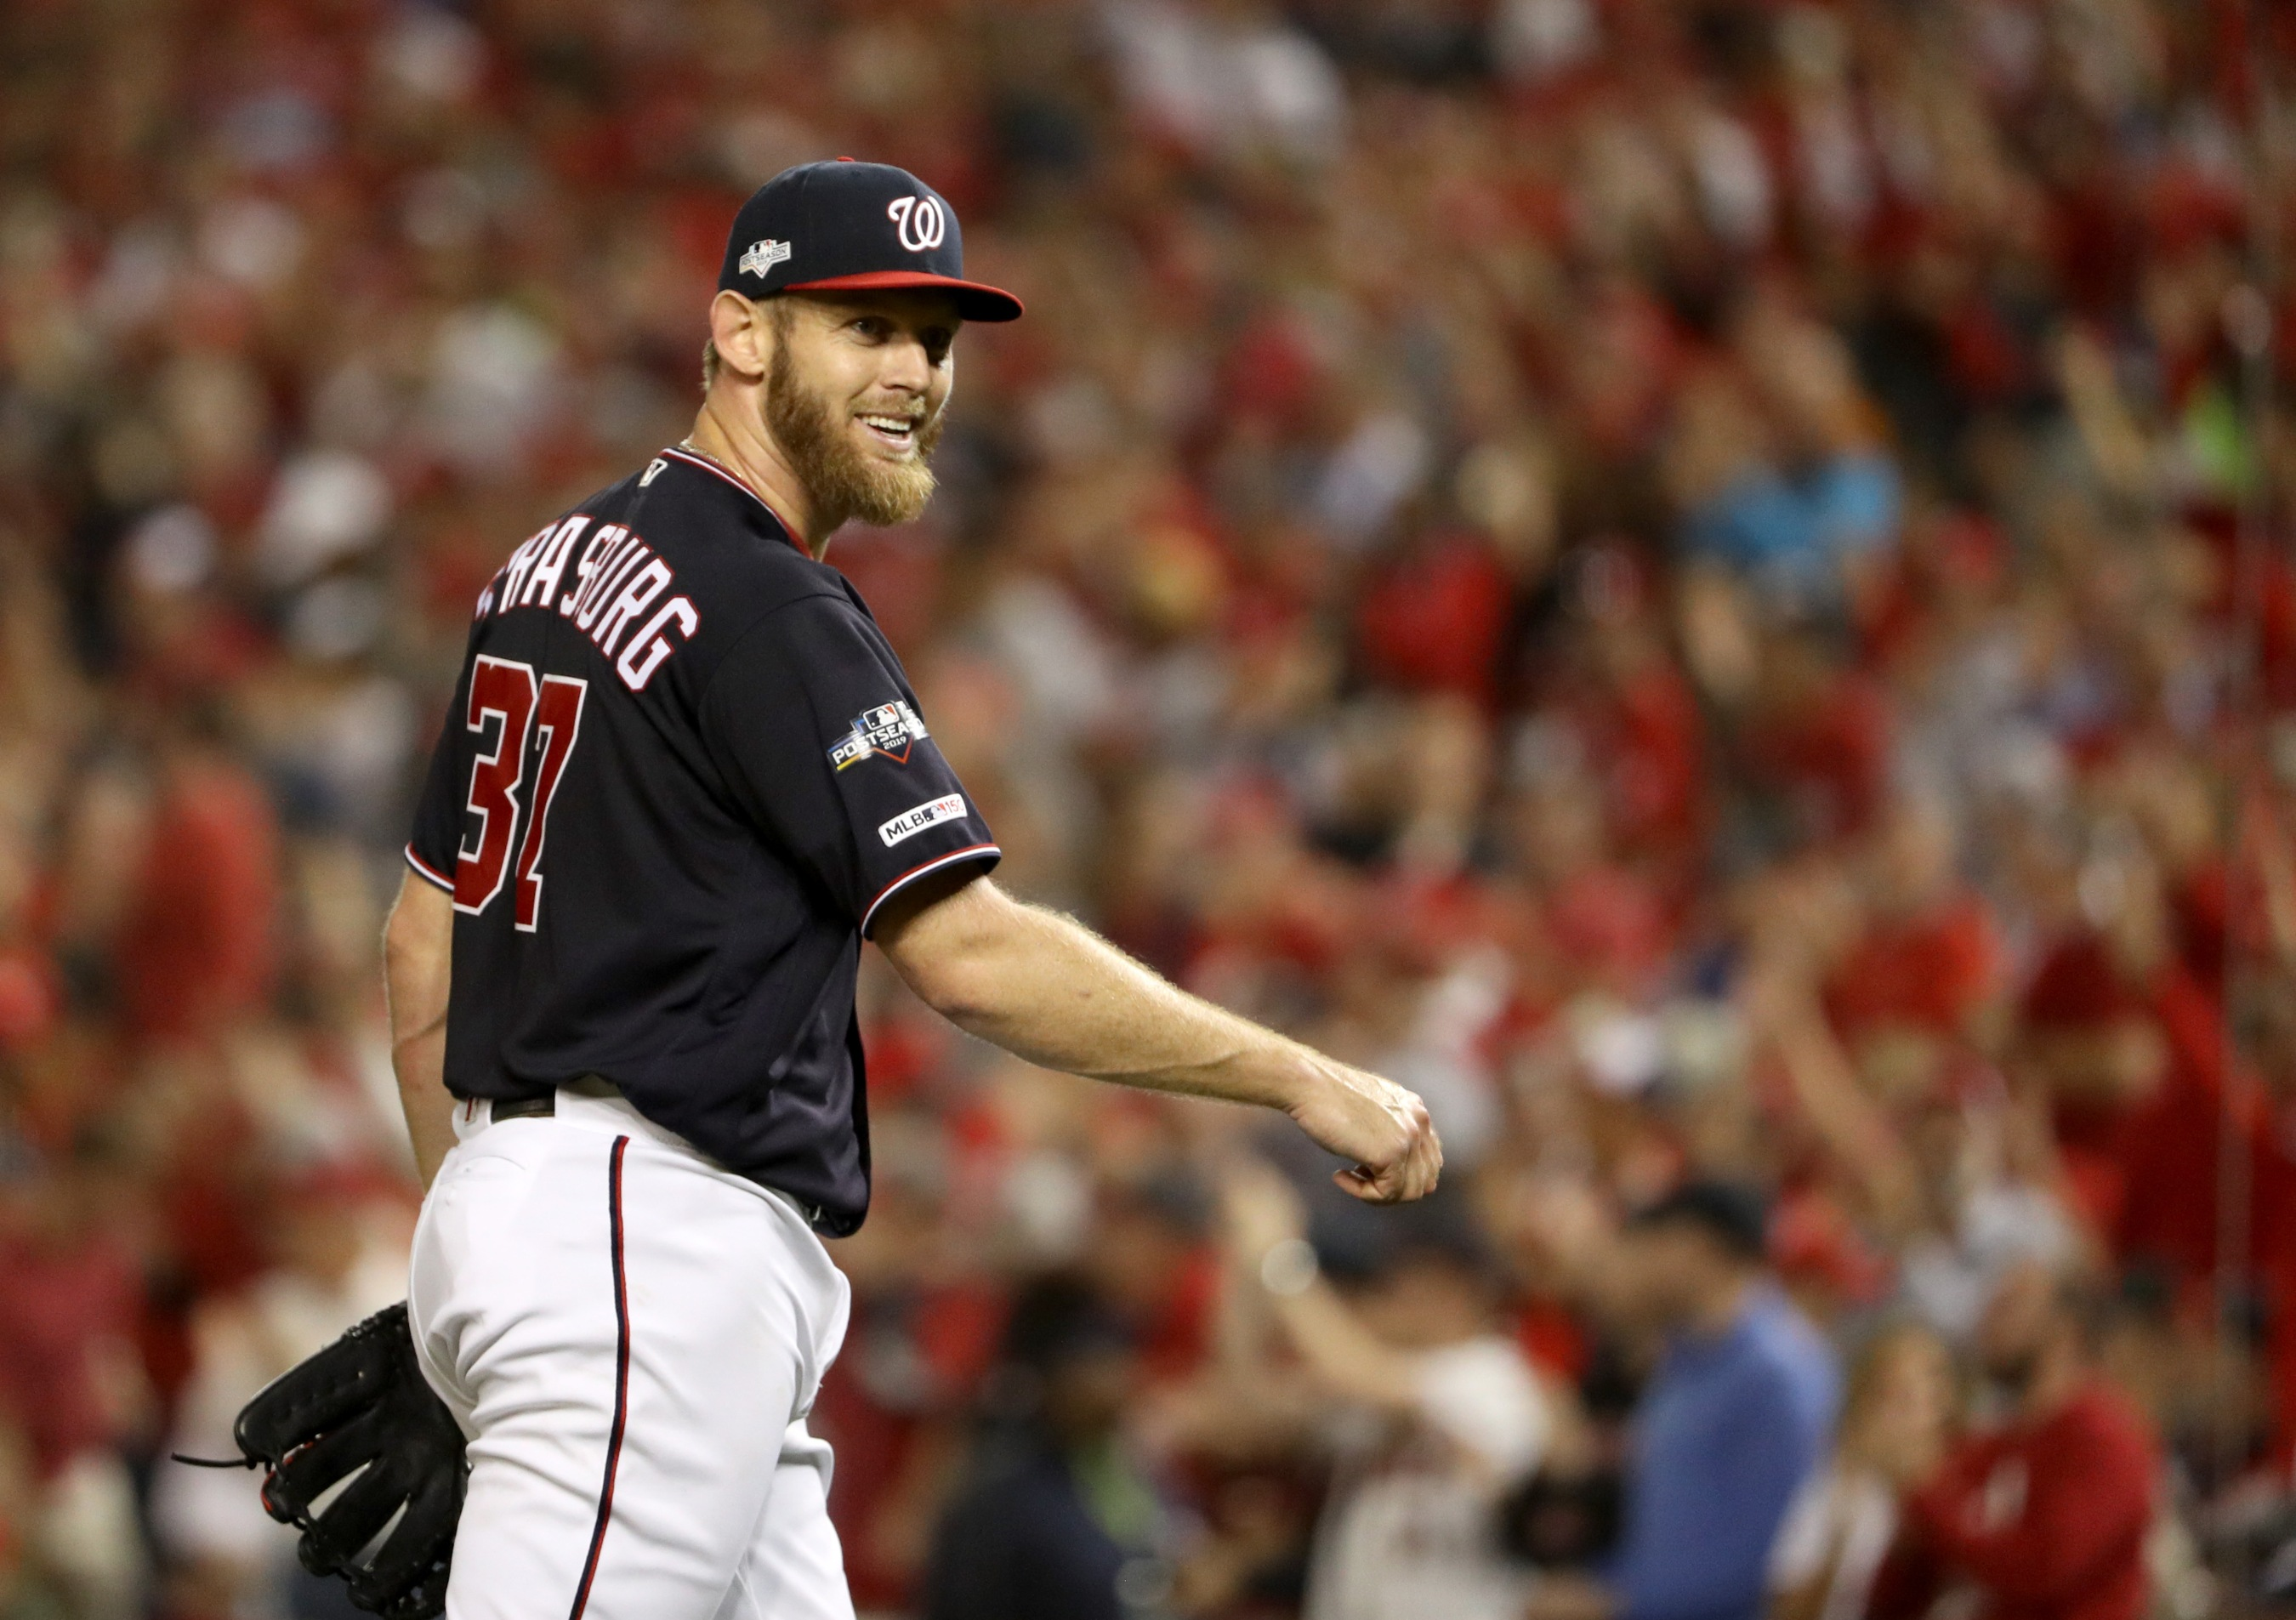 PODCAST: The Starpower Shines Bright In ALCS, NLCS